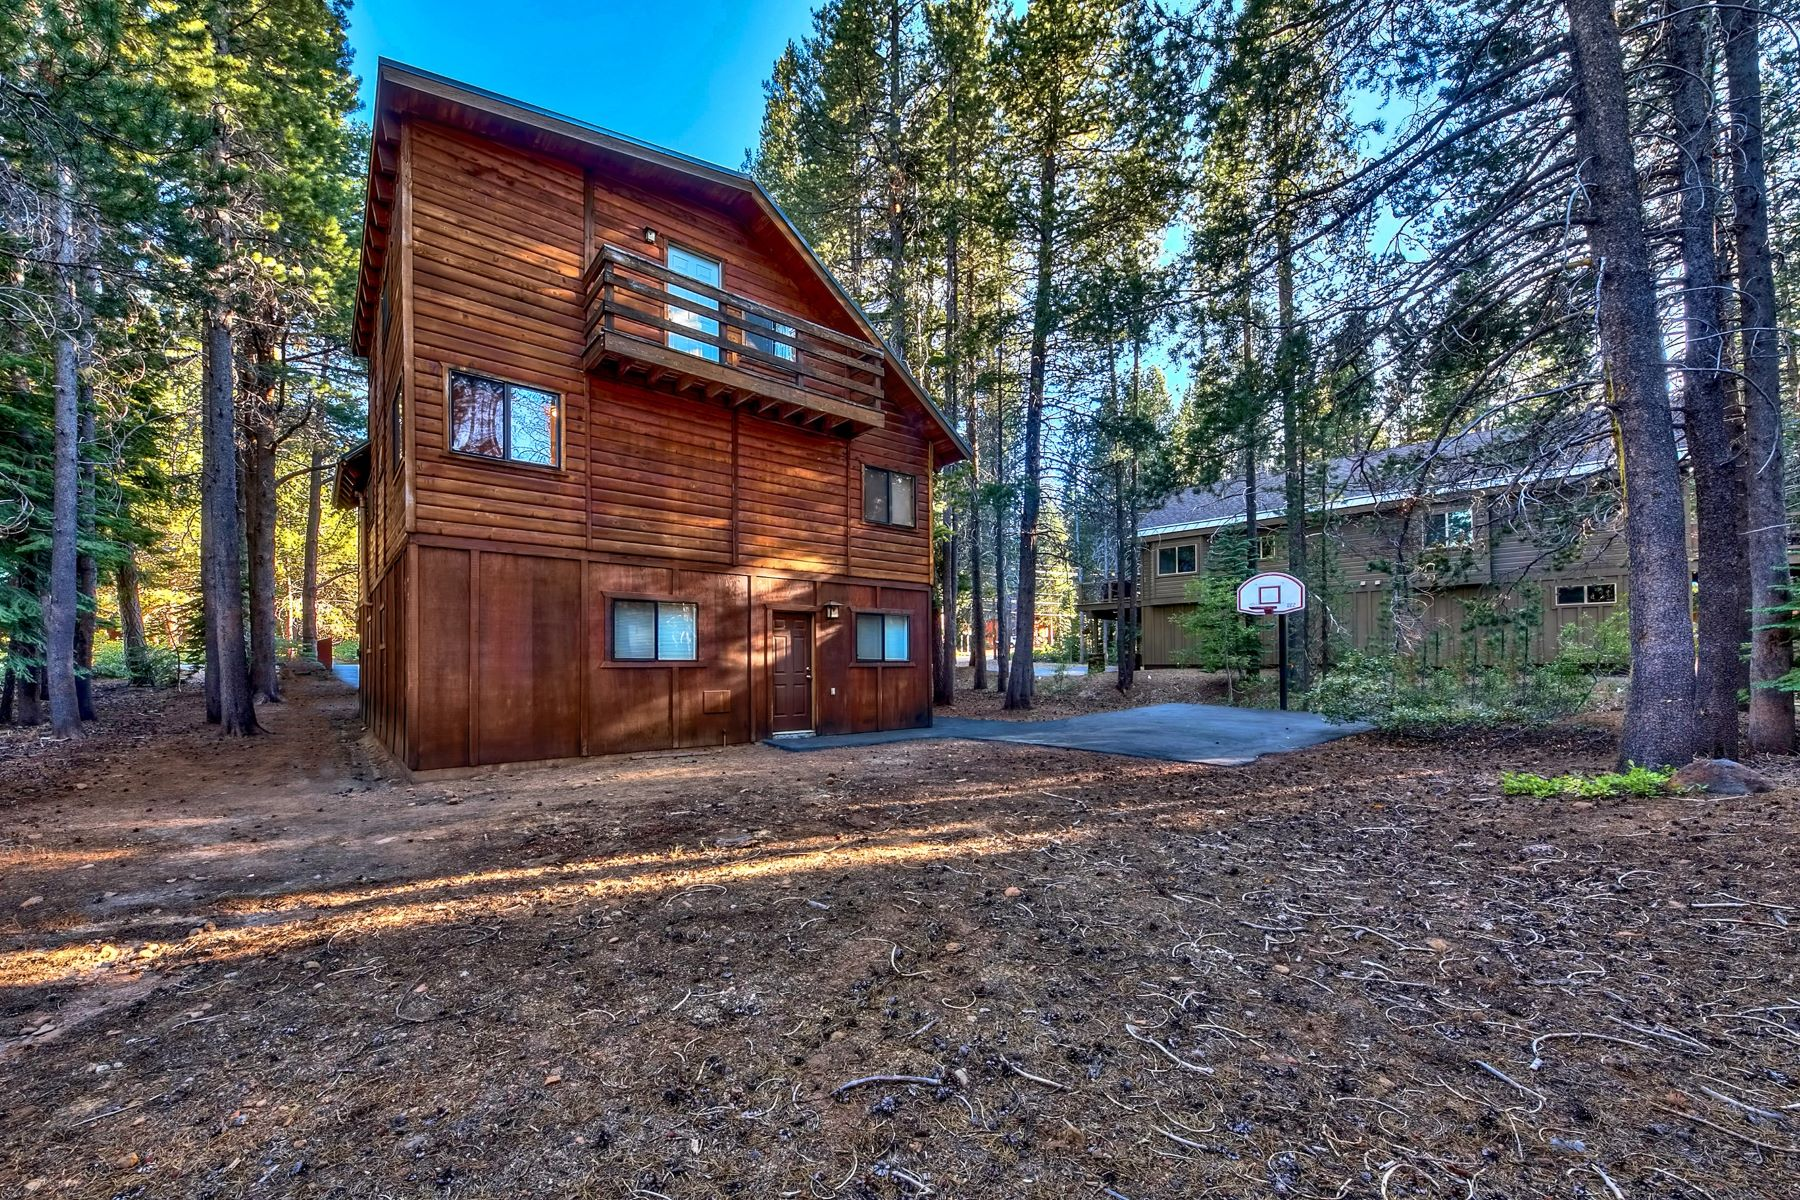 Additional photo for property listing at 15612 Northwoods Blvd, Truckee, CA 96161 15612 Northwoods Blvd. Truckee, California 96161 United States